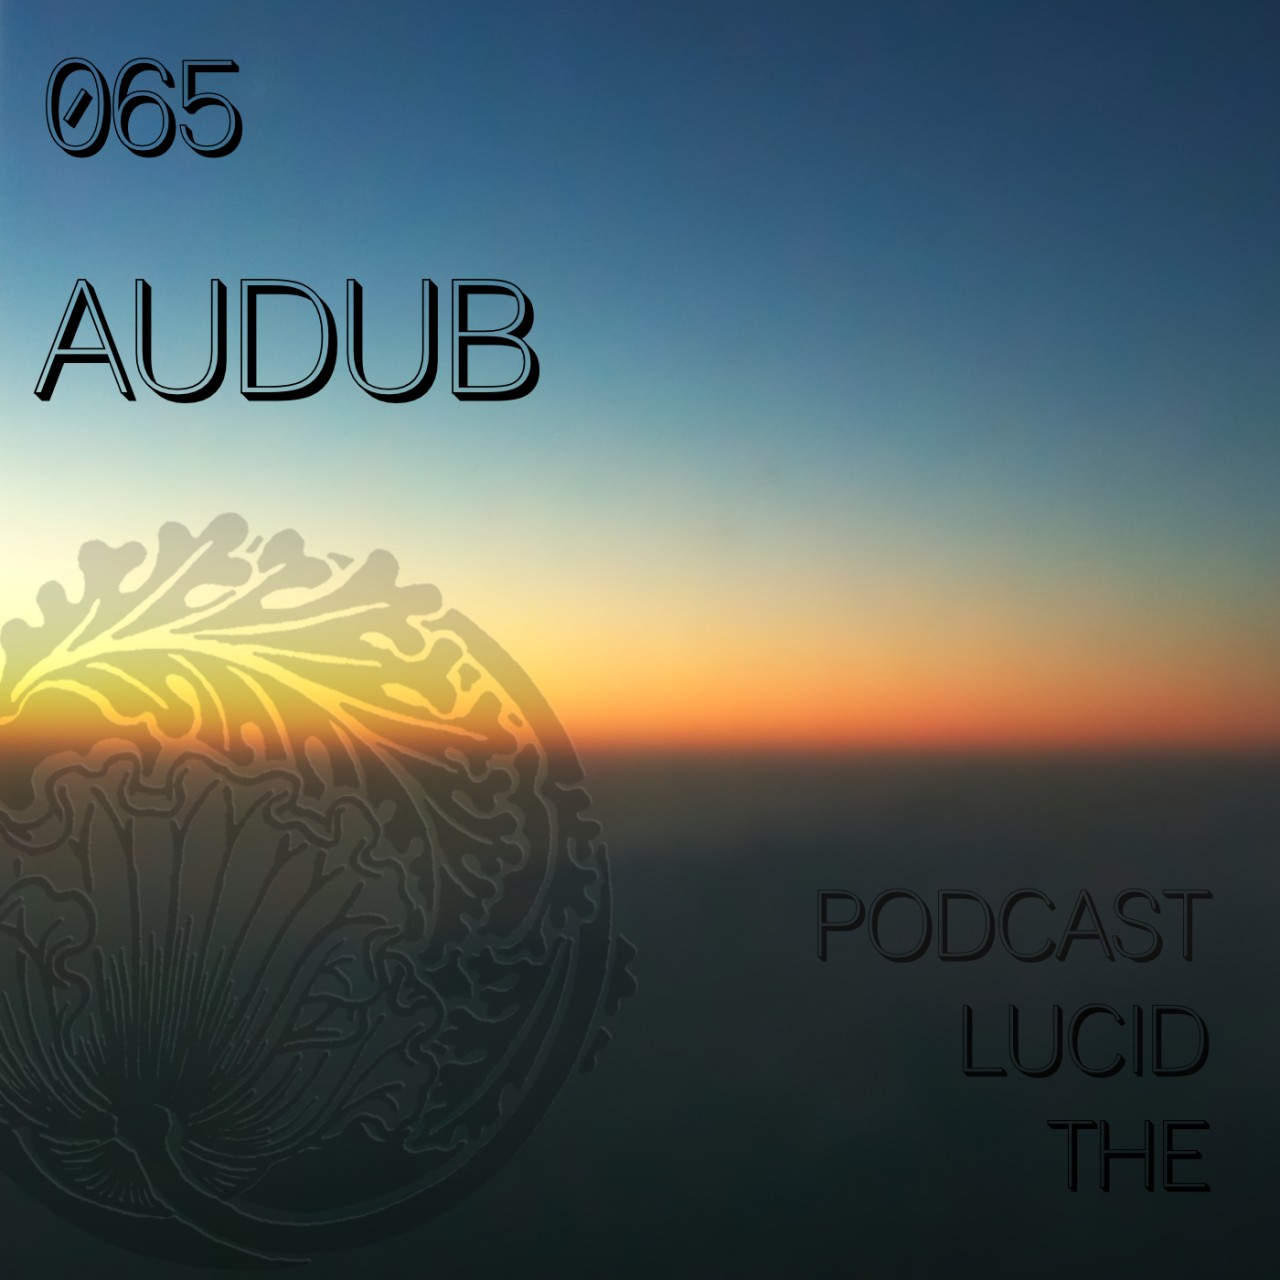 The Lucid Podcast 065 Audub